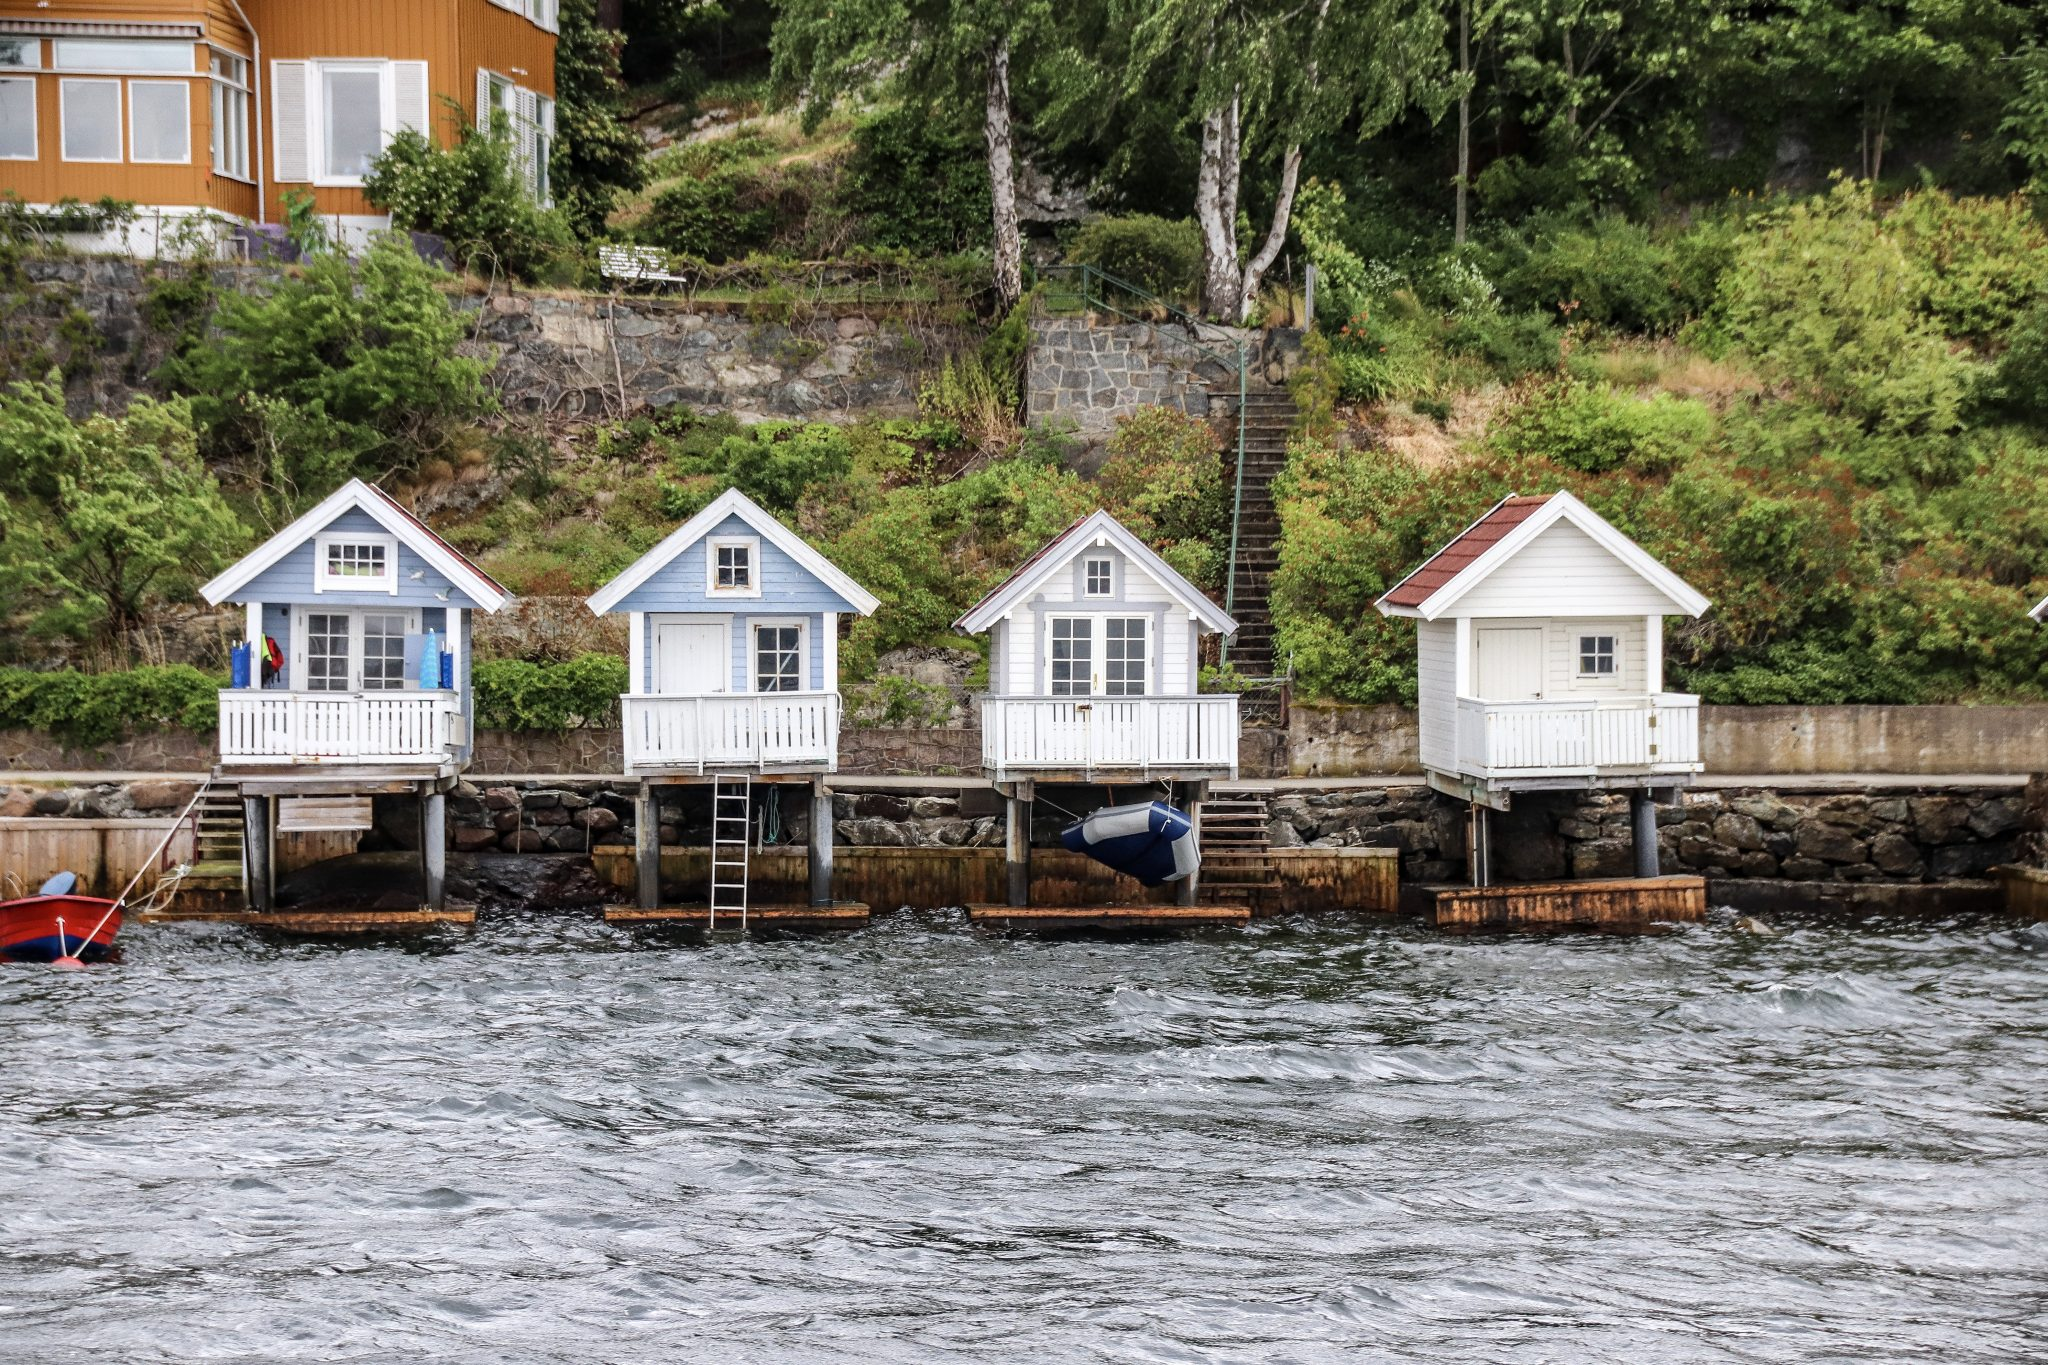 Houses on the Oslo Fjords, Norway